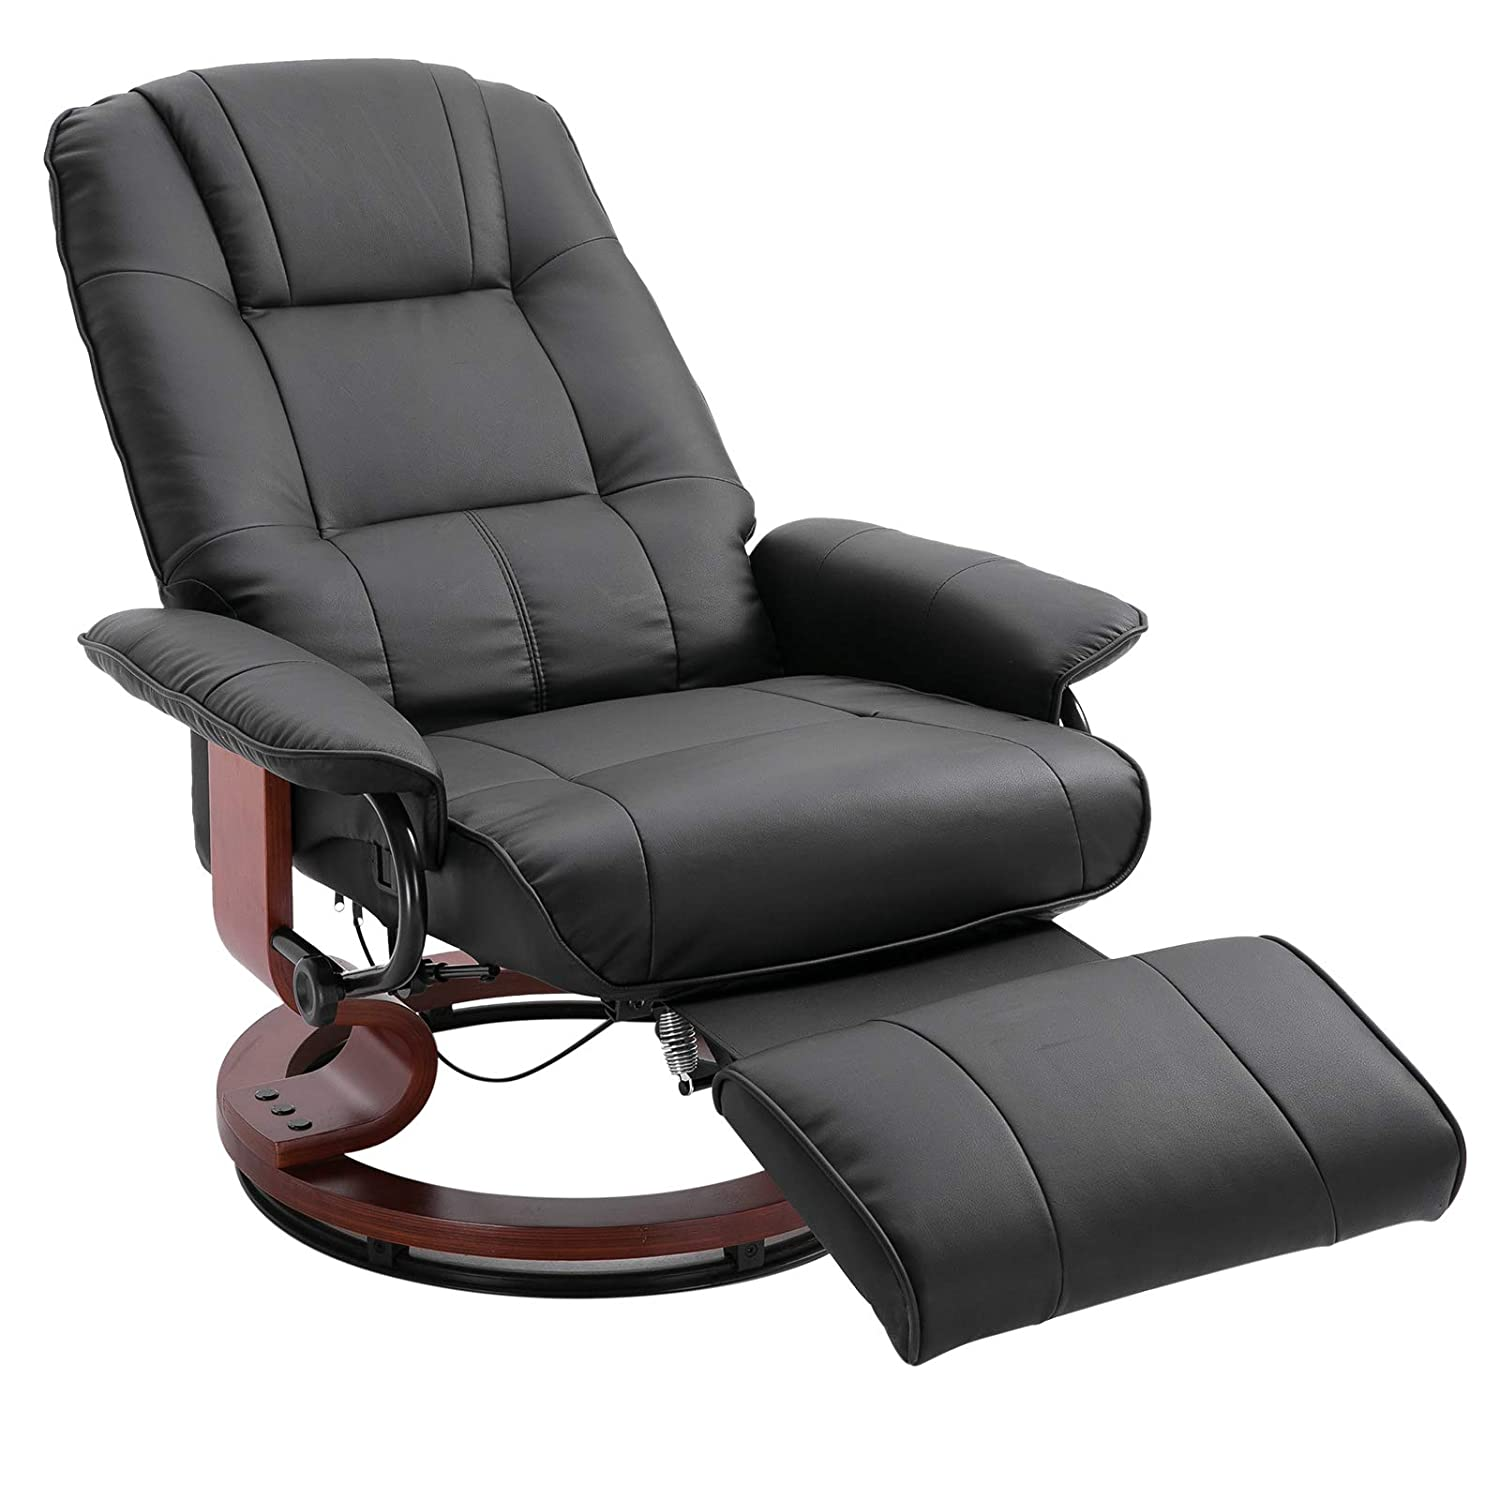 HOMCOM Wooden Recliner Chair Armchair Lounge PU Leather Ottoman Footrest Black